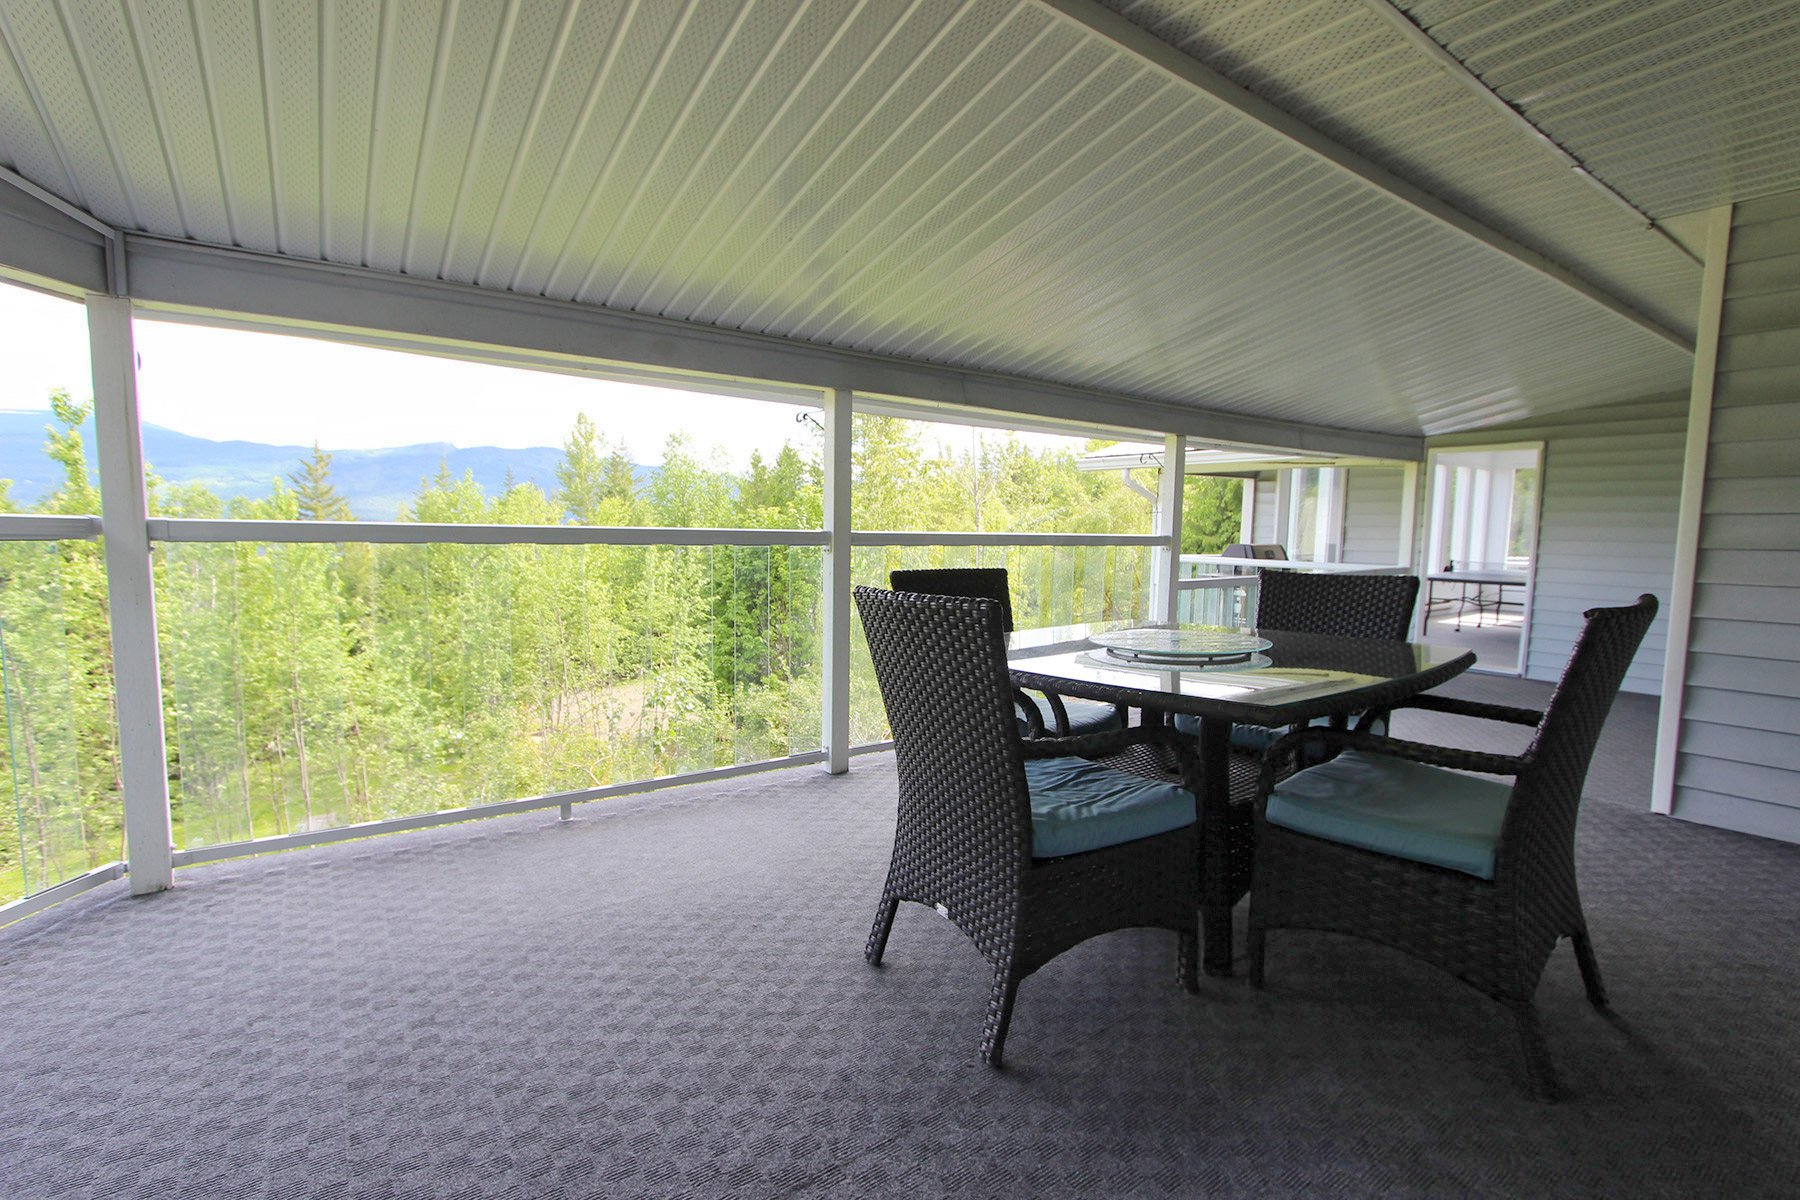 Photo 31: Photos: 6831 Magna Bay Drive in Magna Bay: House with Acreage for sale : MLS®# 10205520